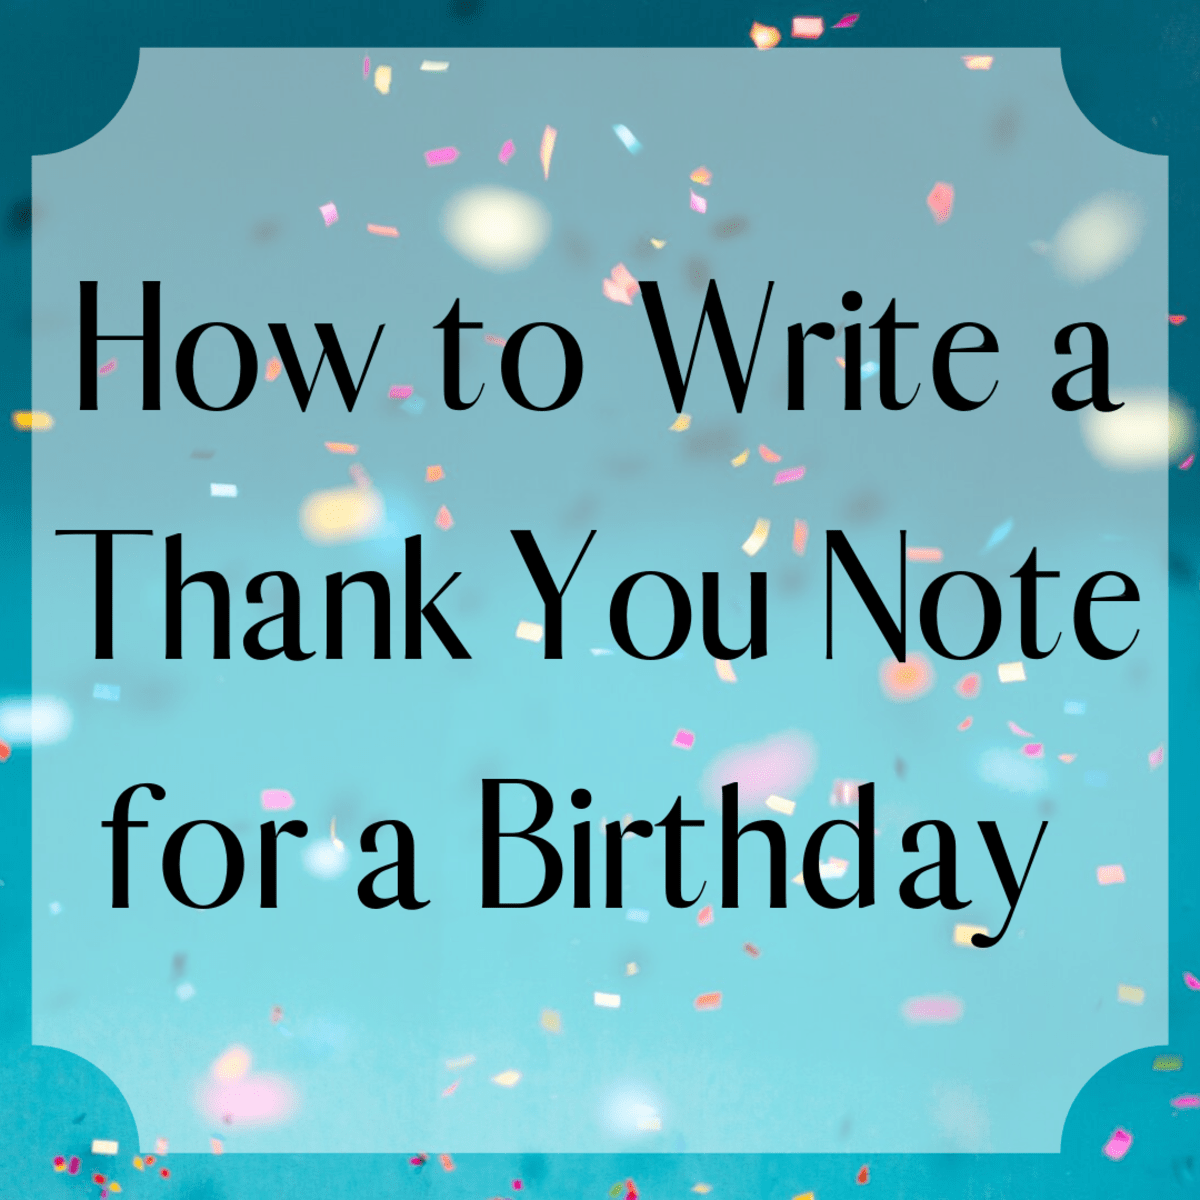 Thank You Notes For Birthday Wishes